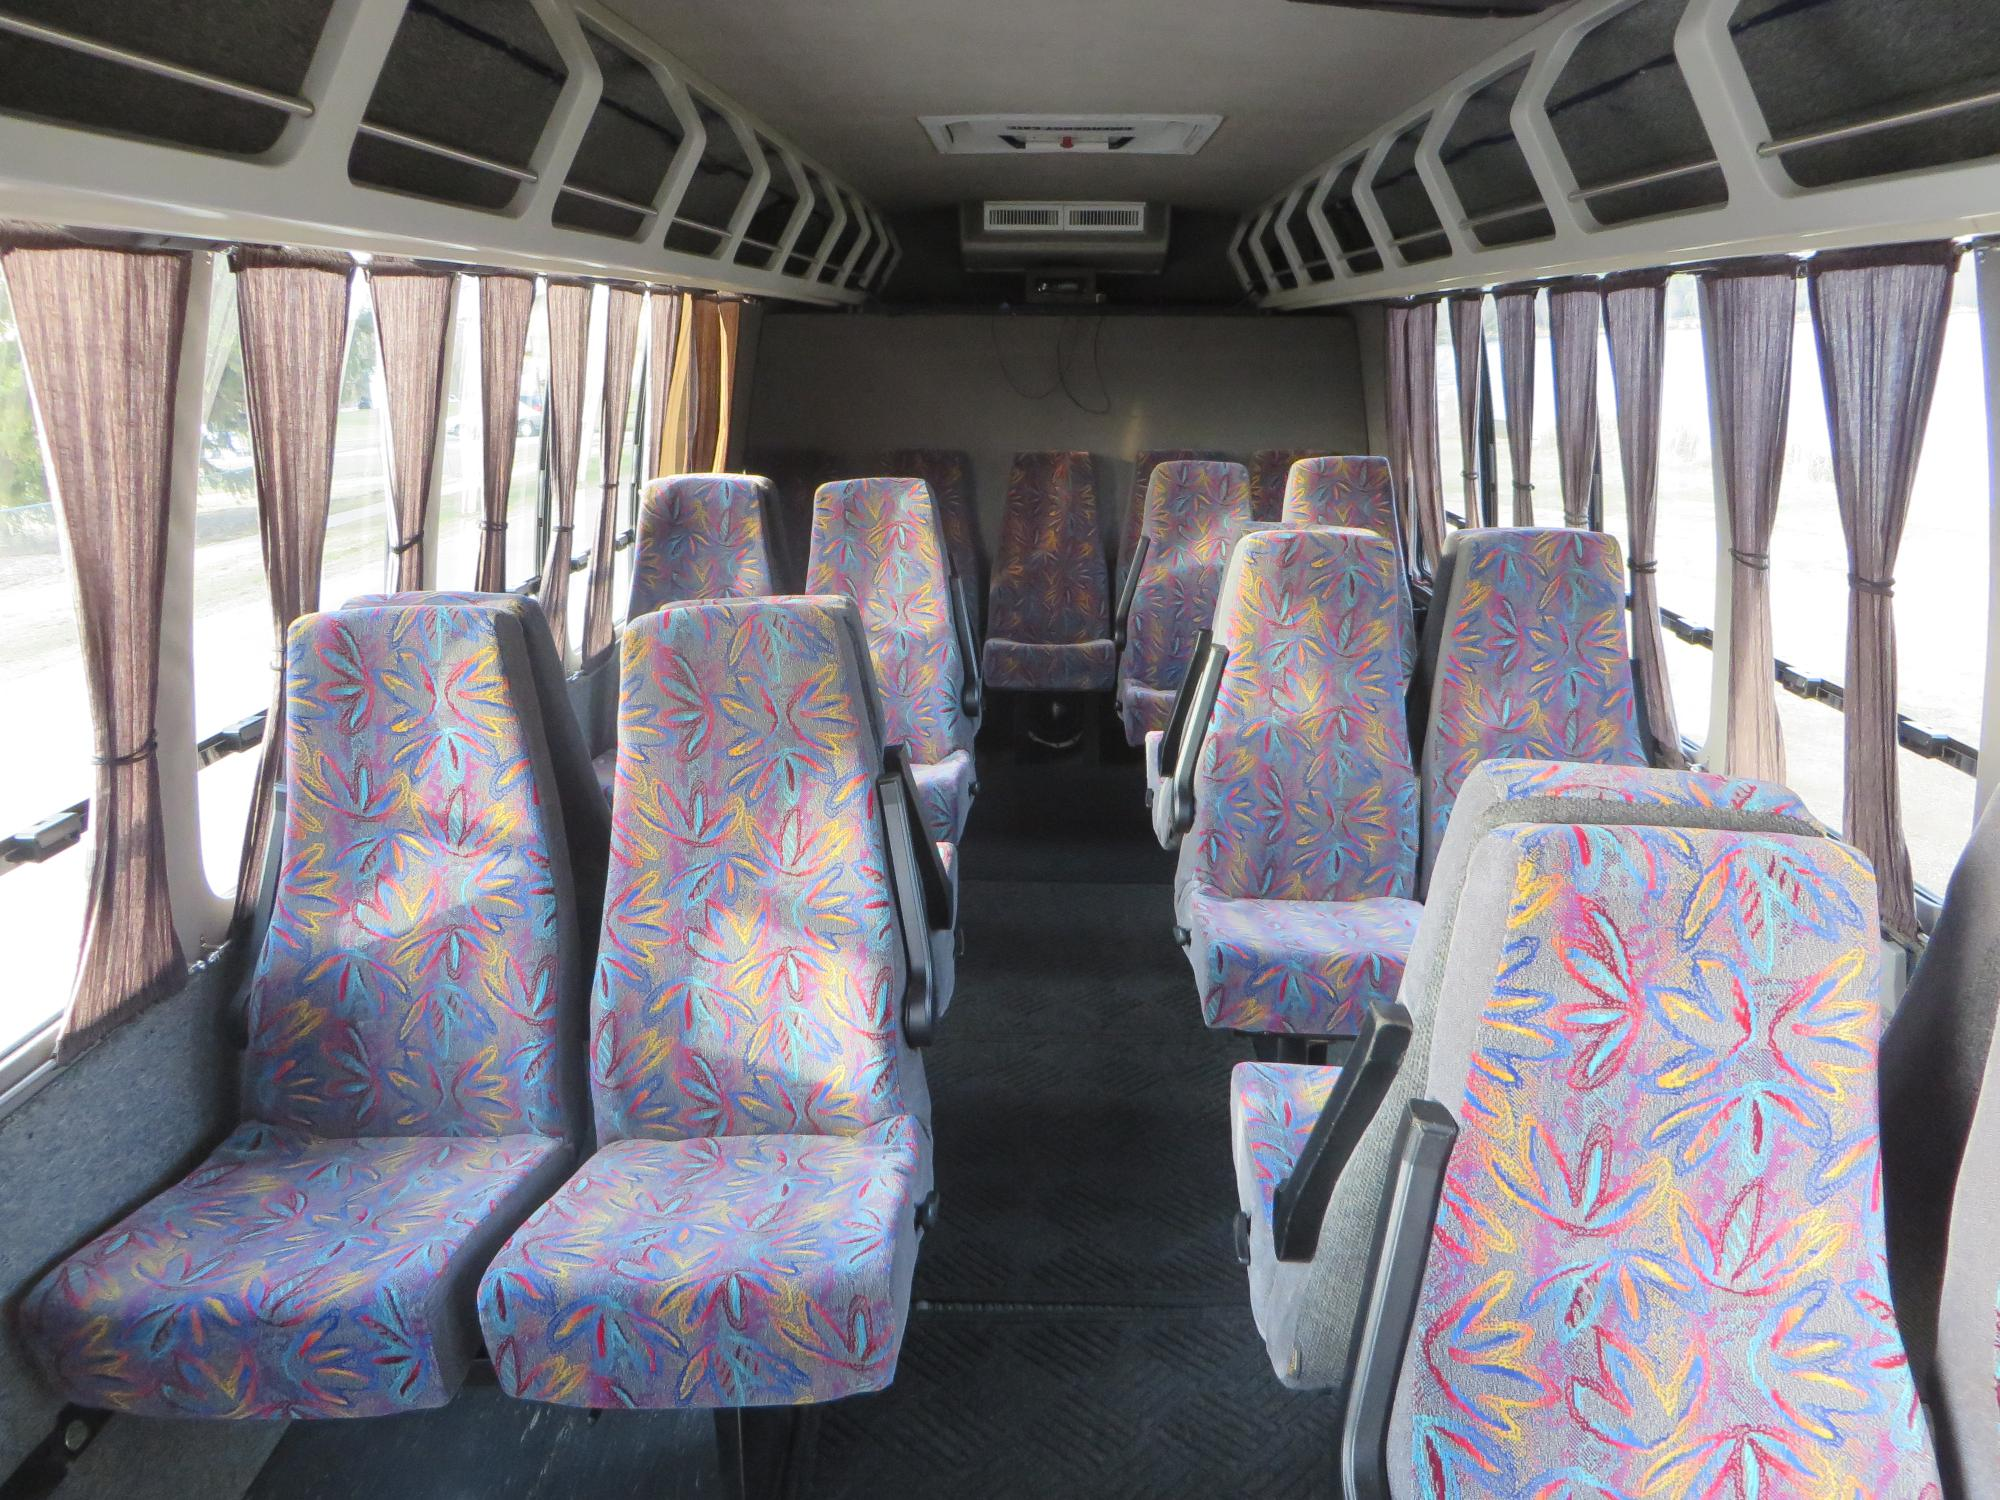 New_Bus_Inside.jpg